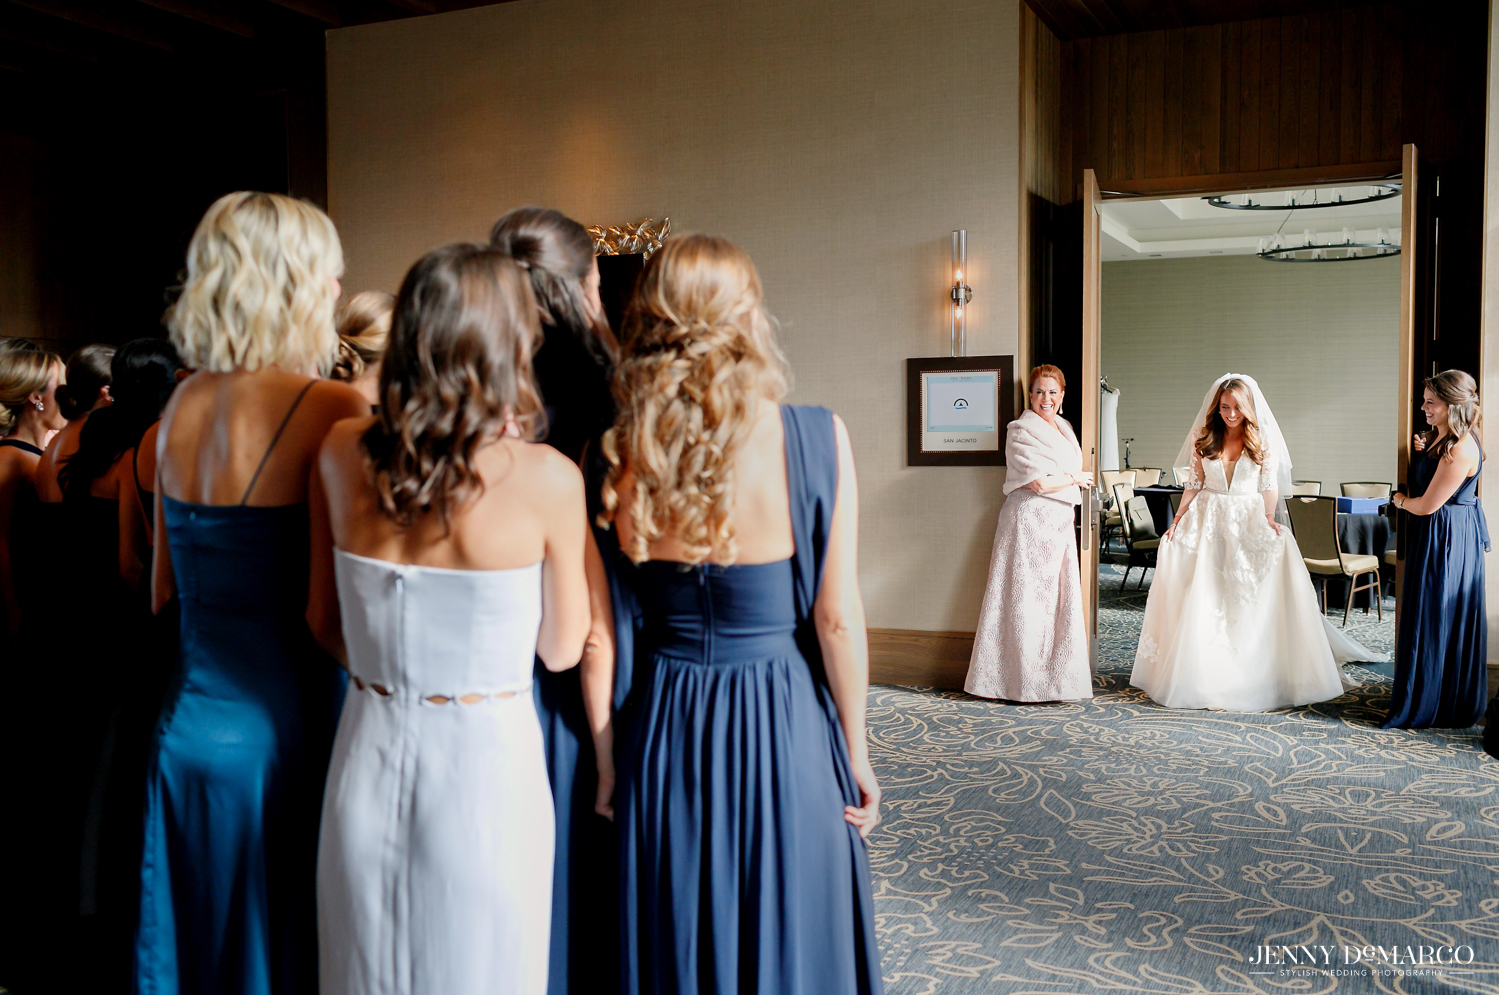 Bridesmaids see Brides big reveal in wedding dress